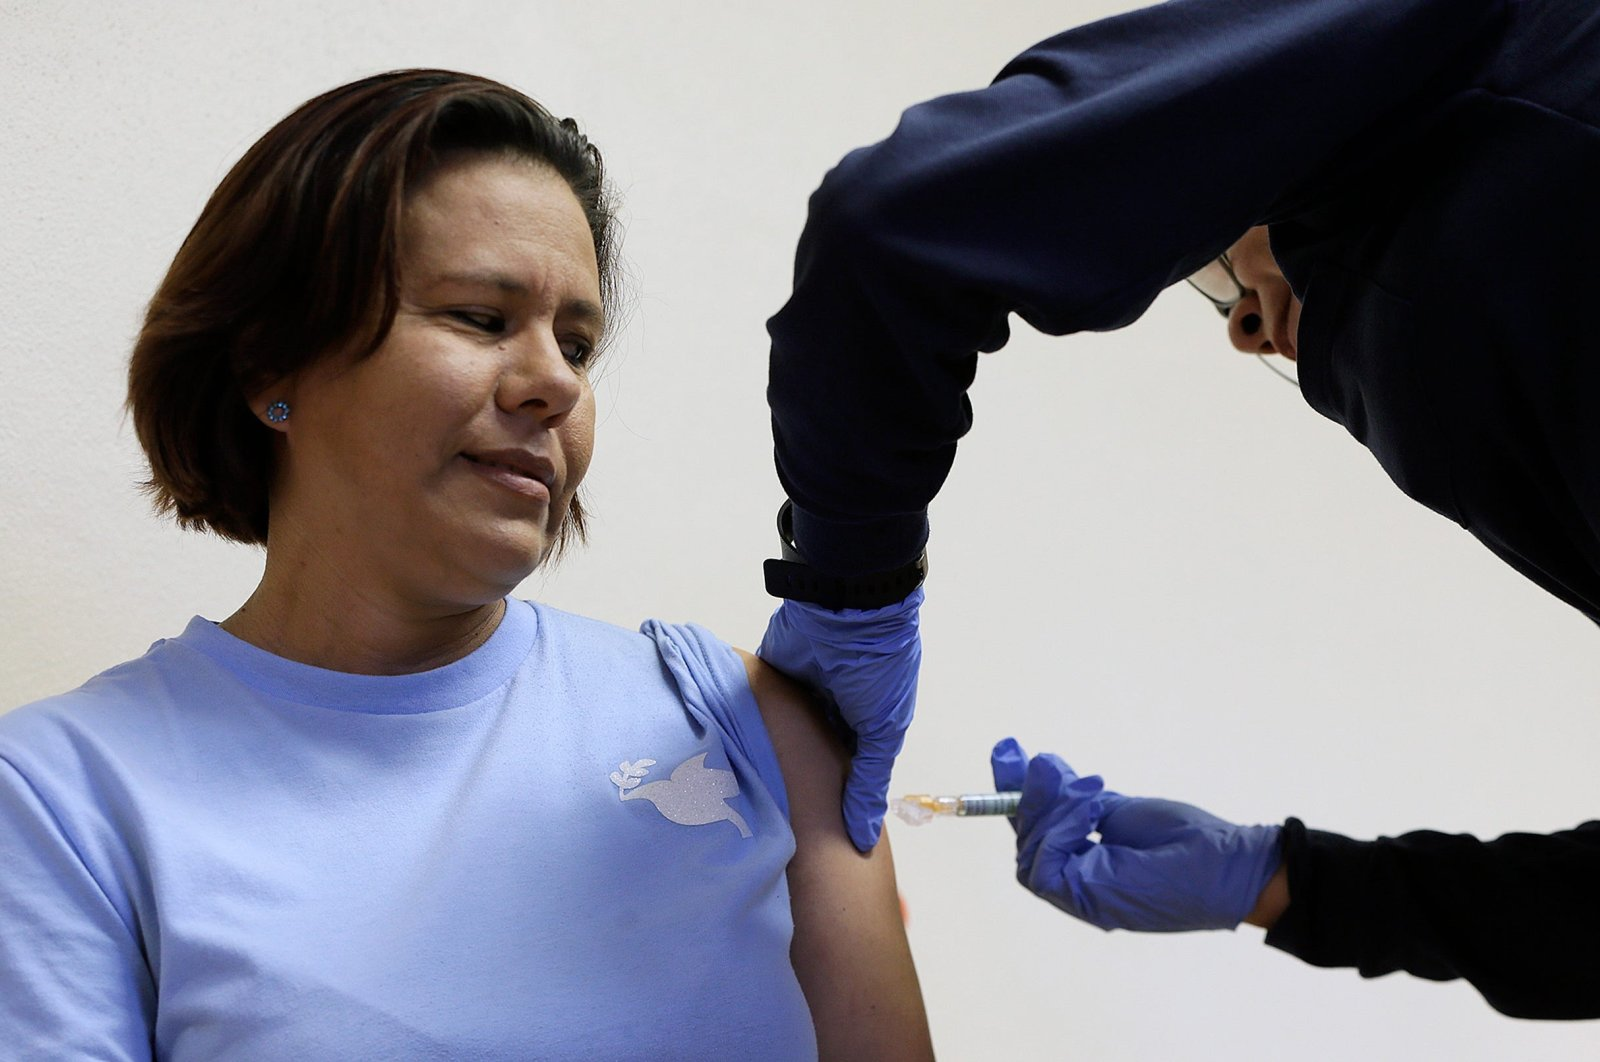 A woman gets her free influenza vaccine from El Paso Fire Department Paramedic Elvira Prieto on Aug. 1, 2020. (REUTERS Photo)